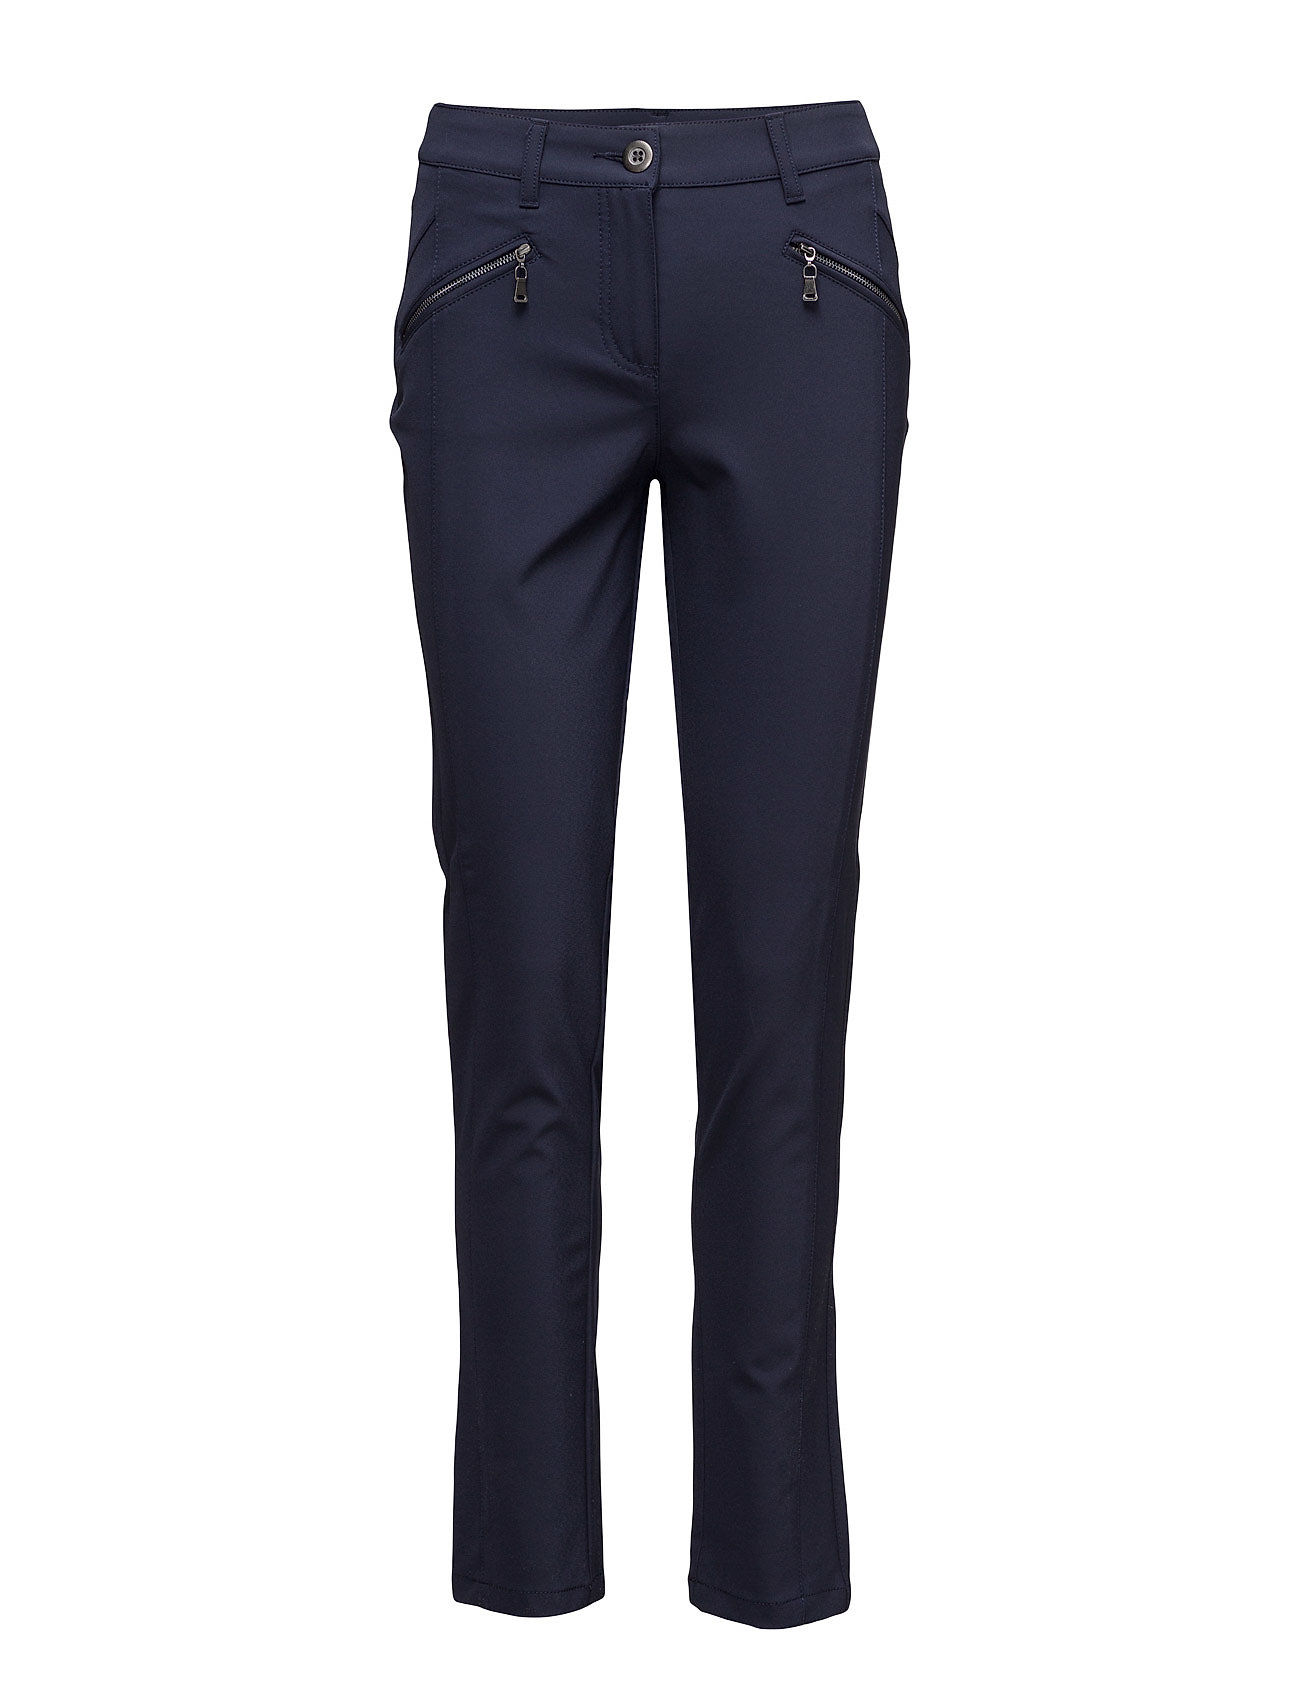 Casual Pants Brandtex Bukser til Damer i Midnight Blue